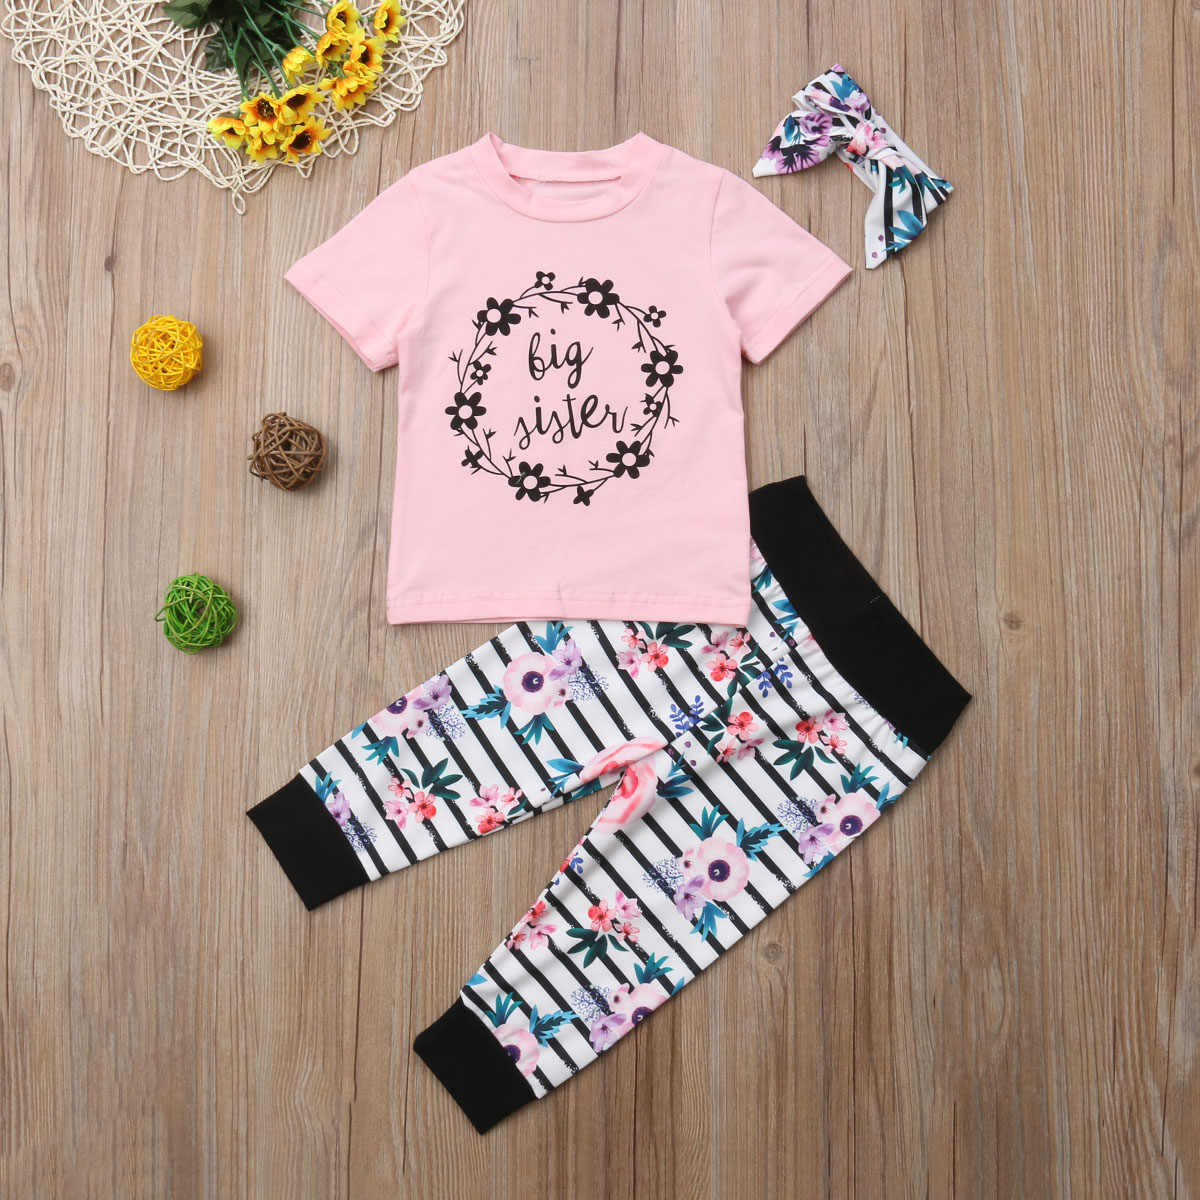 f9c989cd7669 ... Family Clothes Set Sister Newborn Baby Girls Floral Long Sleeve Romper  T-shirt Striped Floral ...